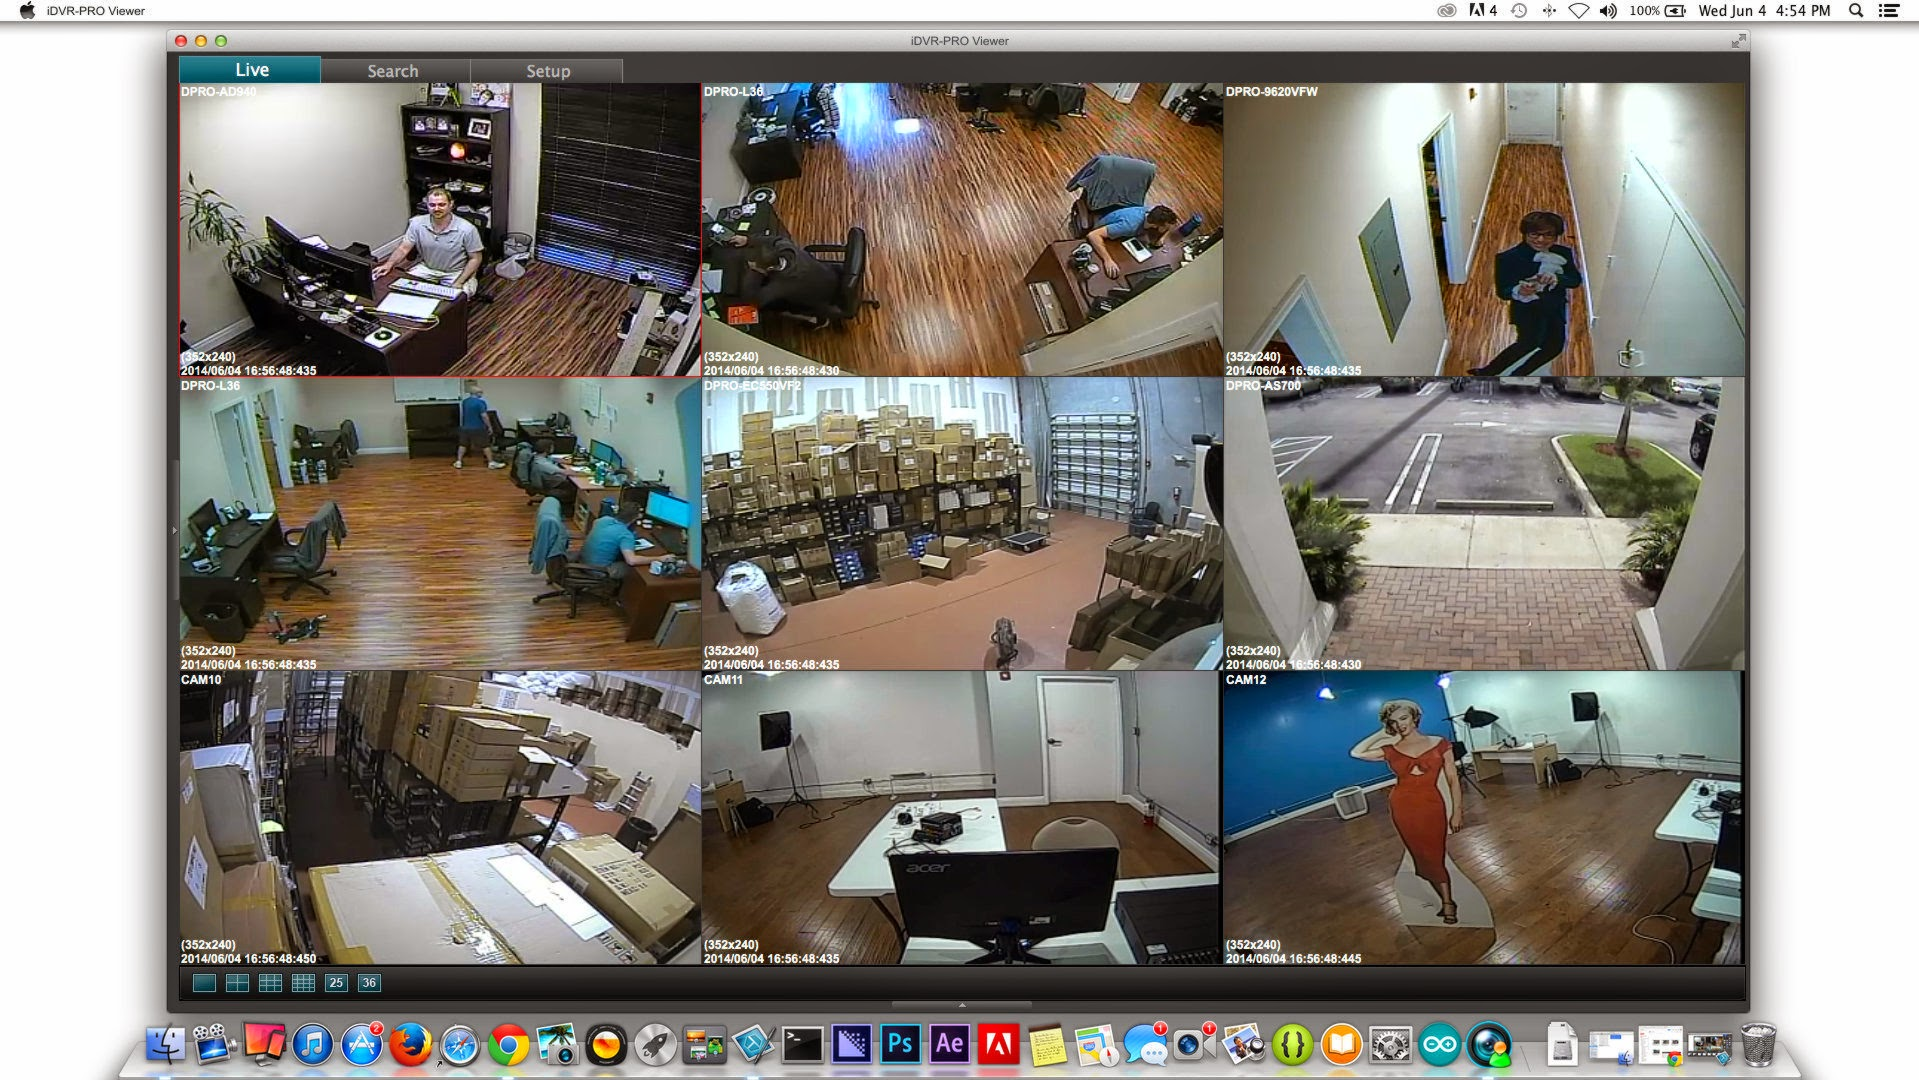 View CCTV Security Cameras from Mac Software with iDVR-PRO